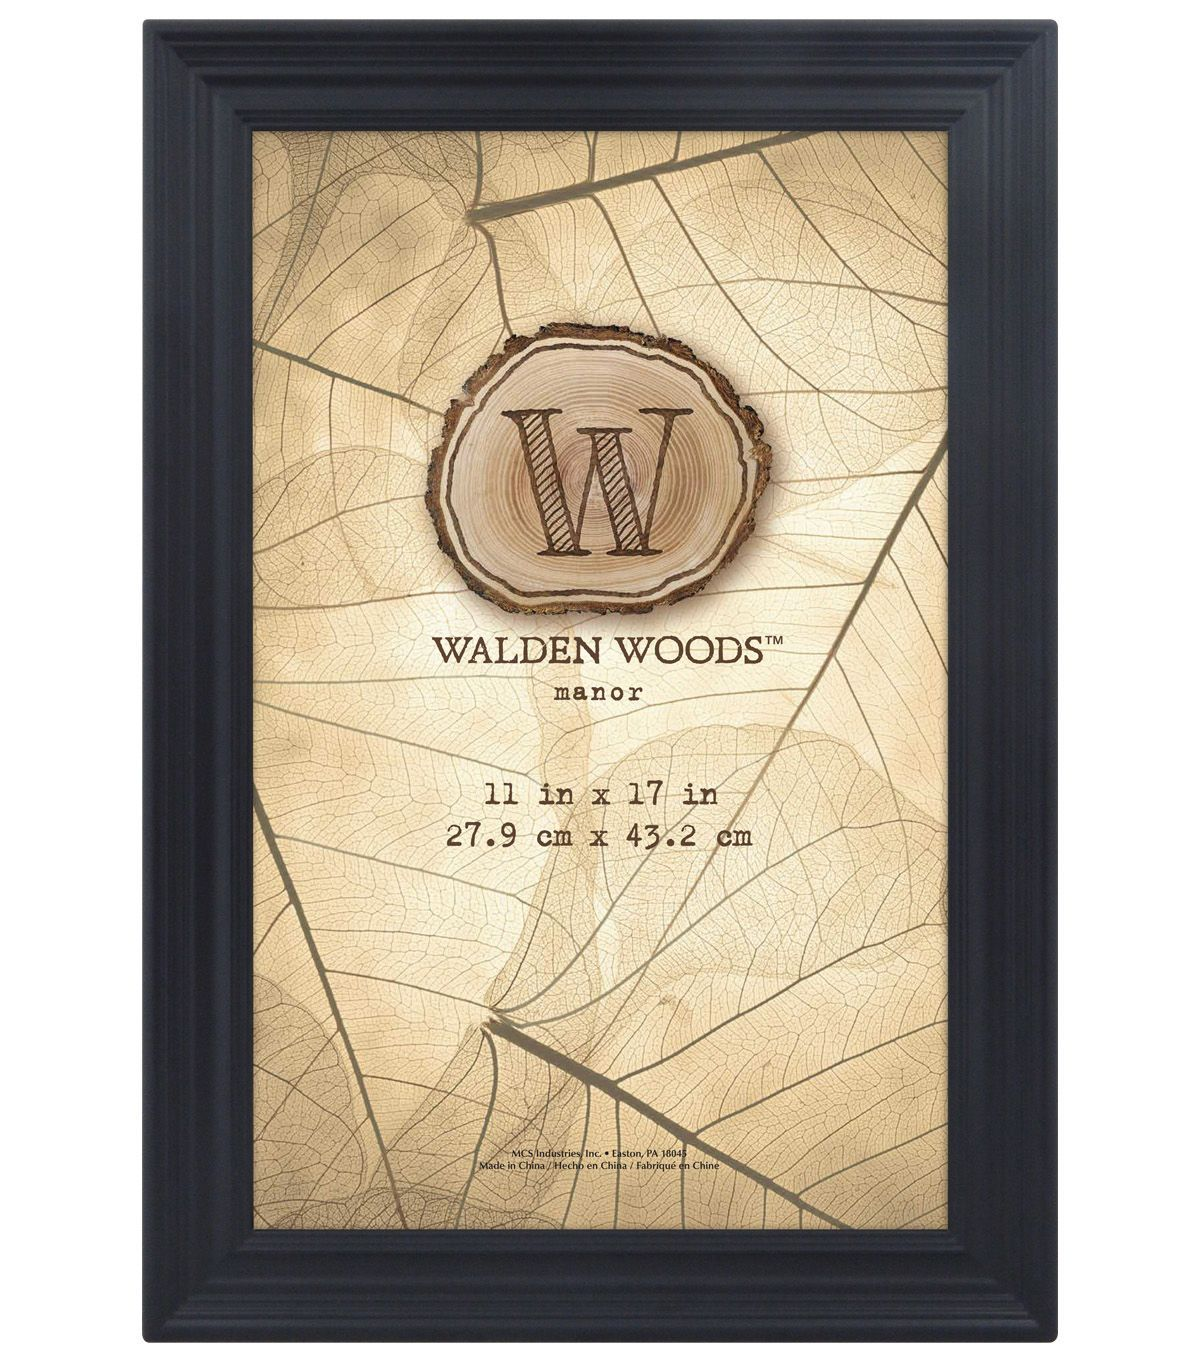 Walden Woods Wall Frame 11x17 Black Frames On Wall Black Walls Frame